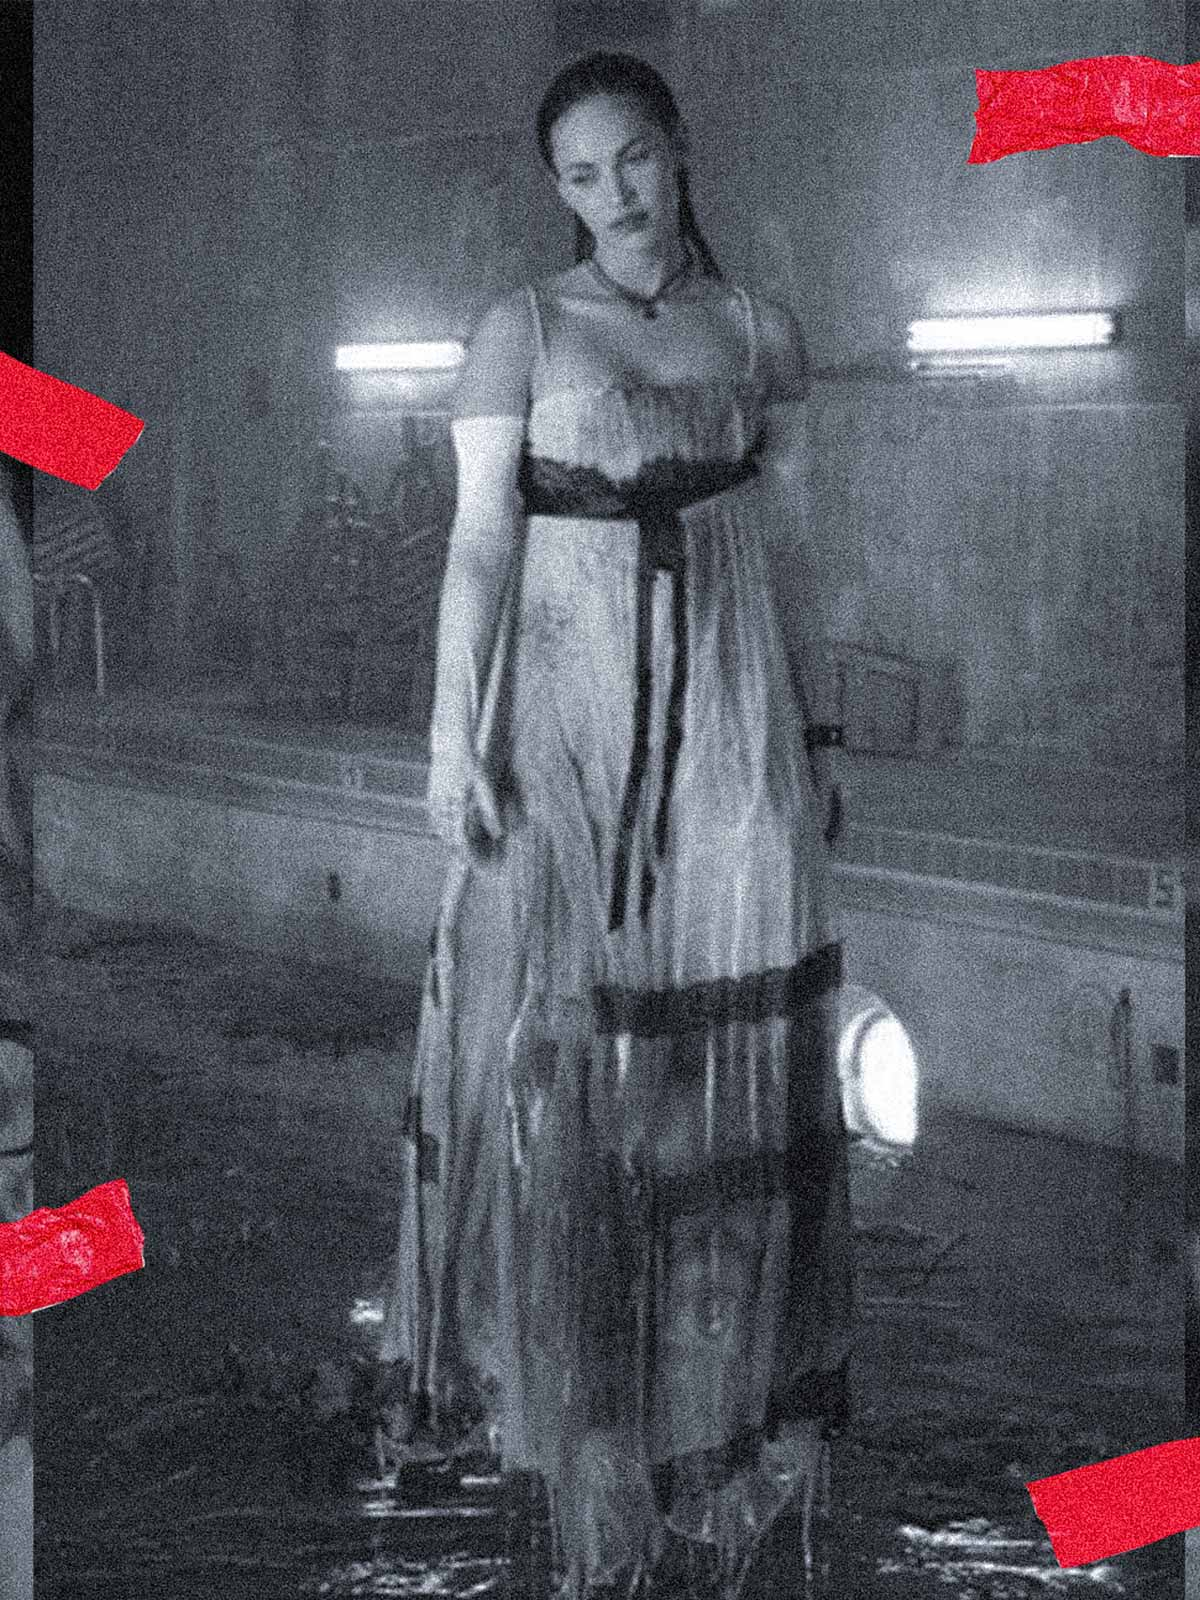 Dana Donnelly's hot girl guide to hot girl horror movies